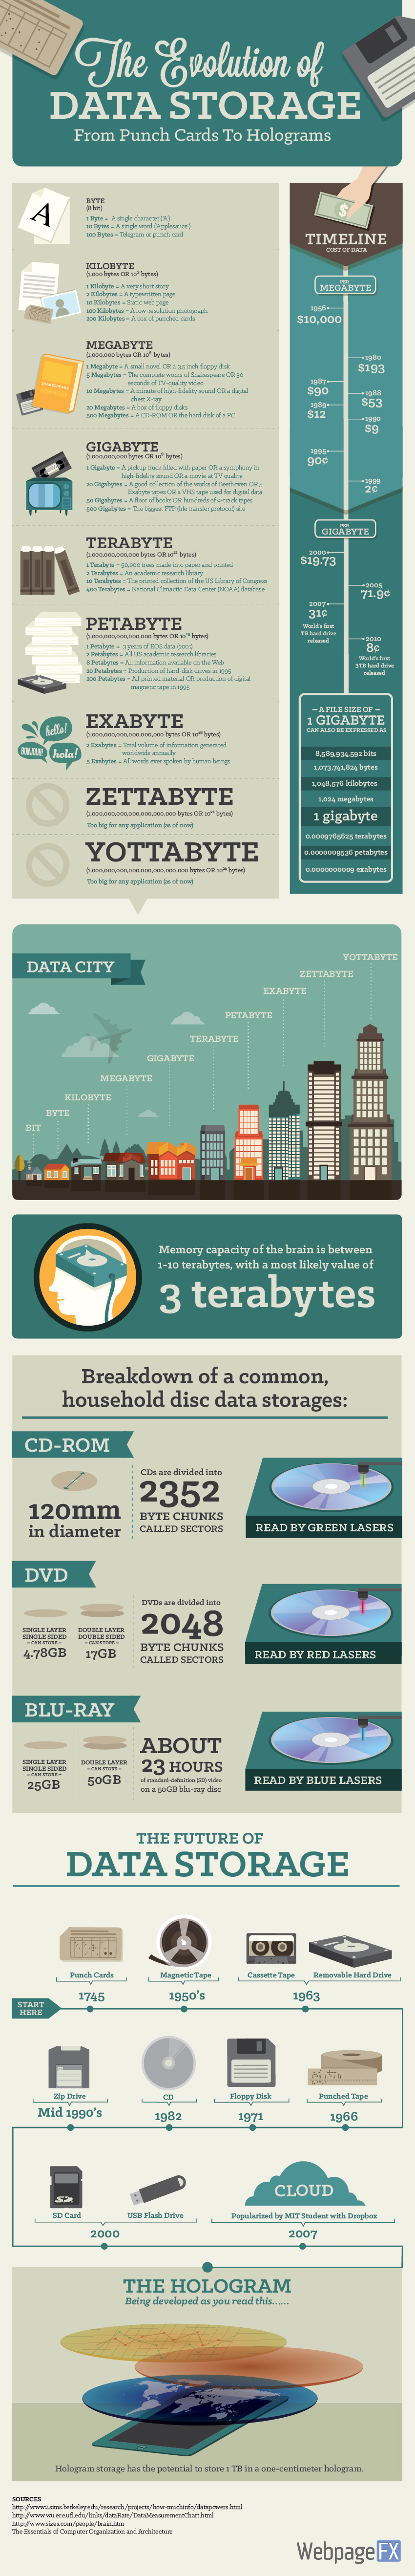 From Punch Cards To Holograms: The Evolution of Data Storage